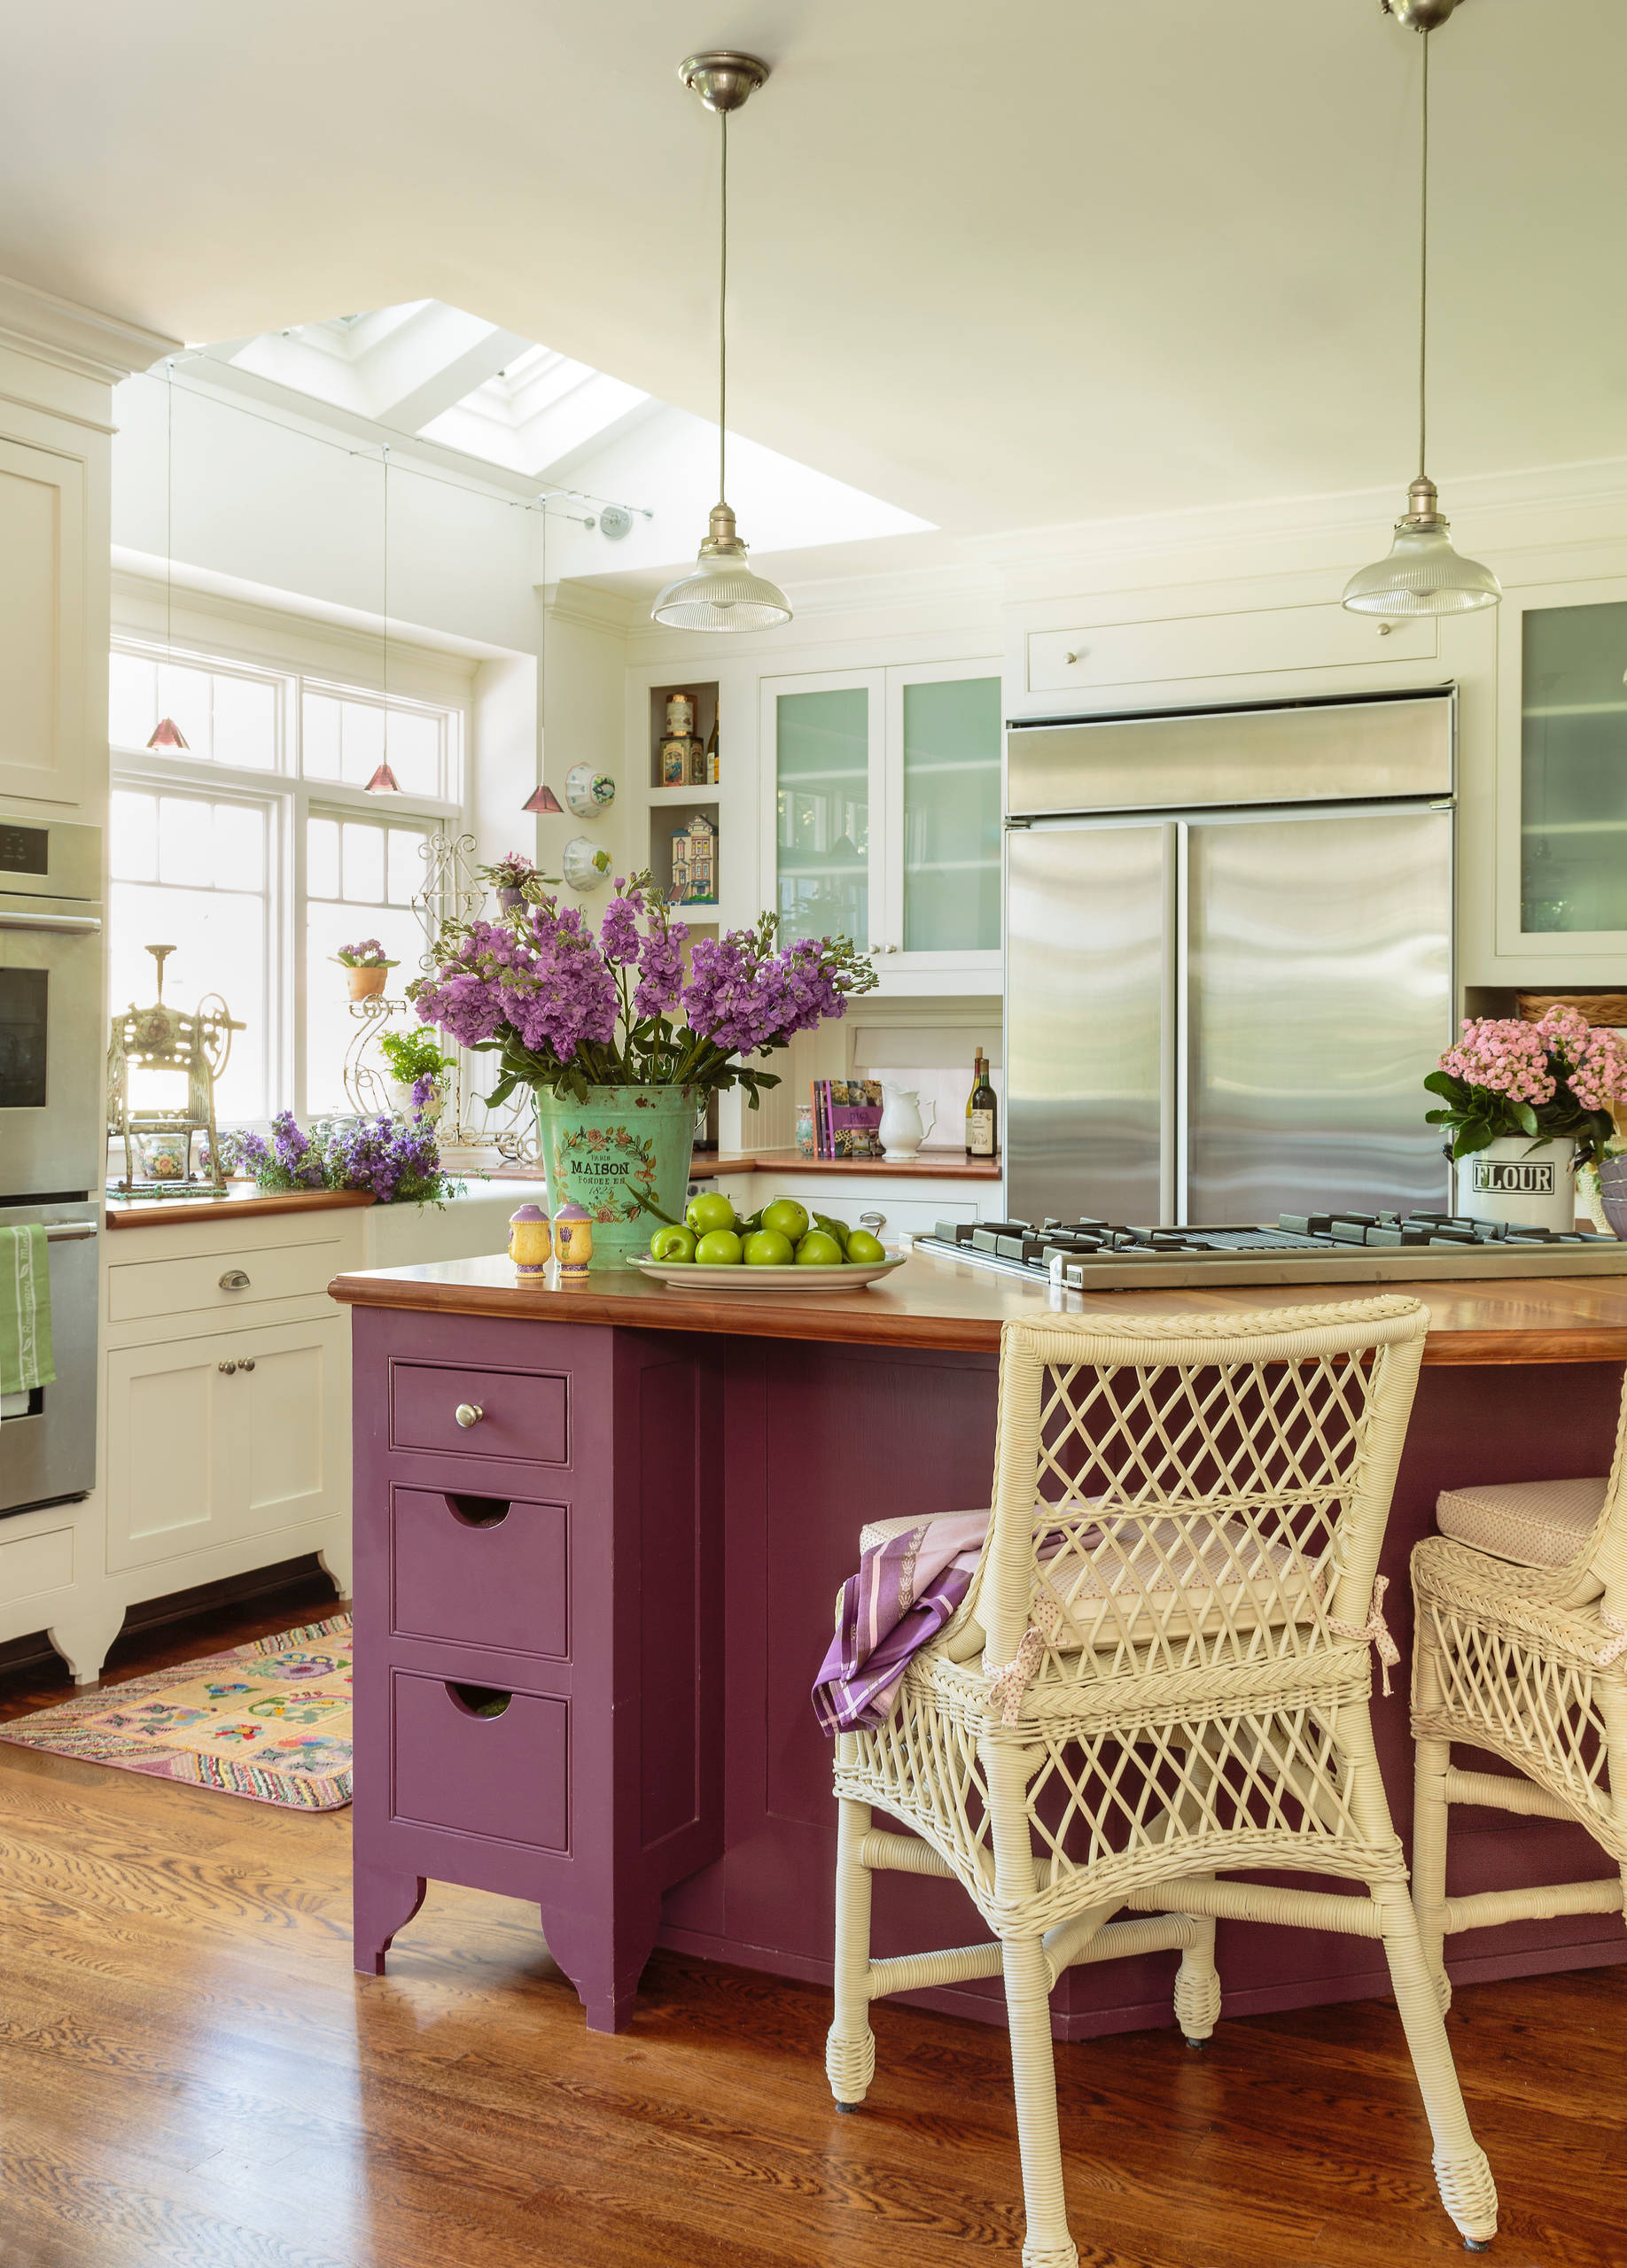 75 Beautiful Shabby Chic Style Kitchen Pictures Ideas January 2021 Houzz